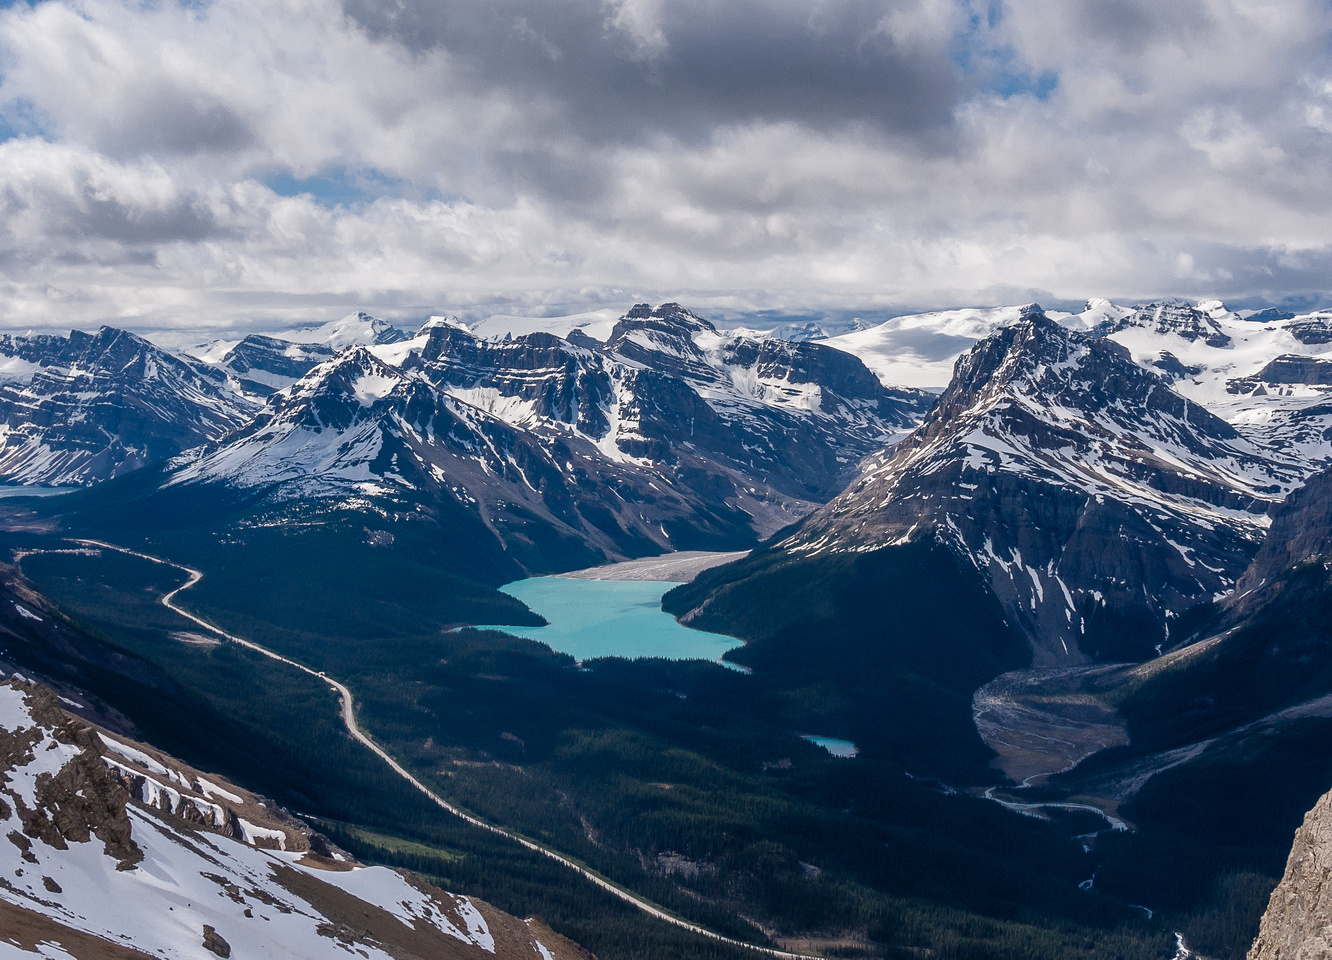 Excellent views back to Jimmy Simpson, Thompson and Peyto Lake with the Wapta icefield.